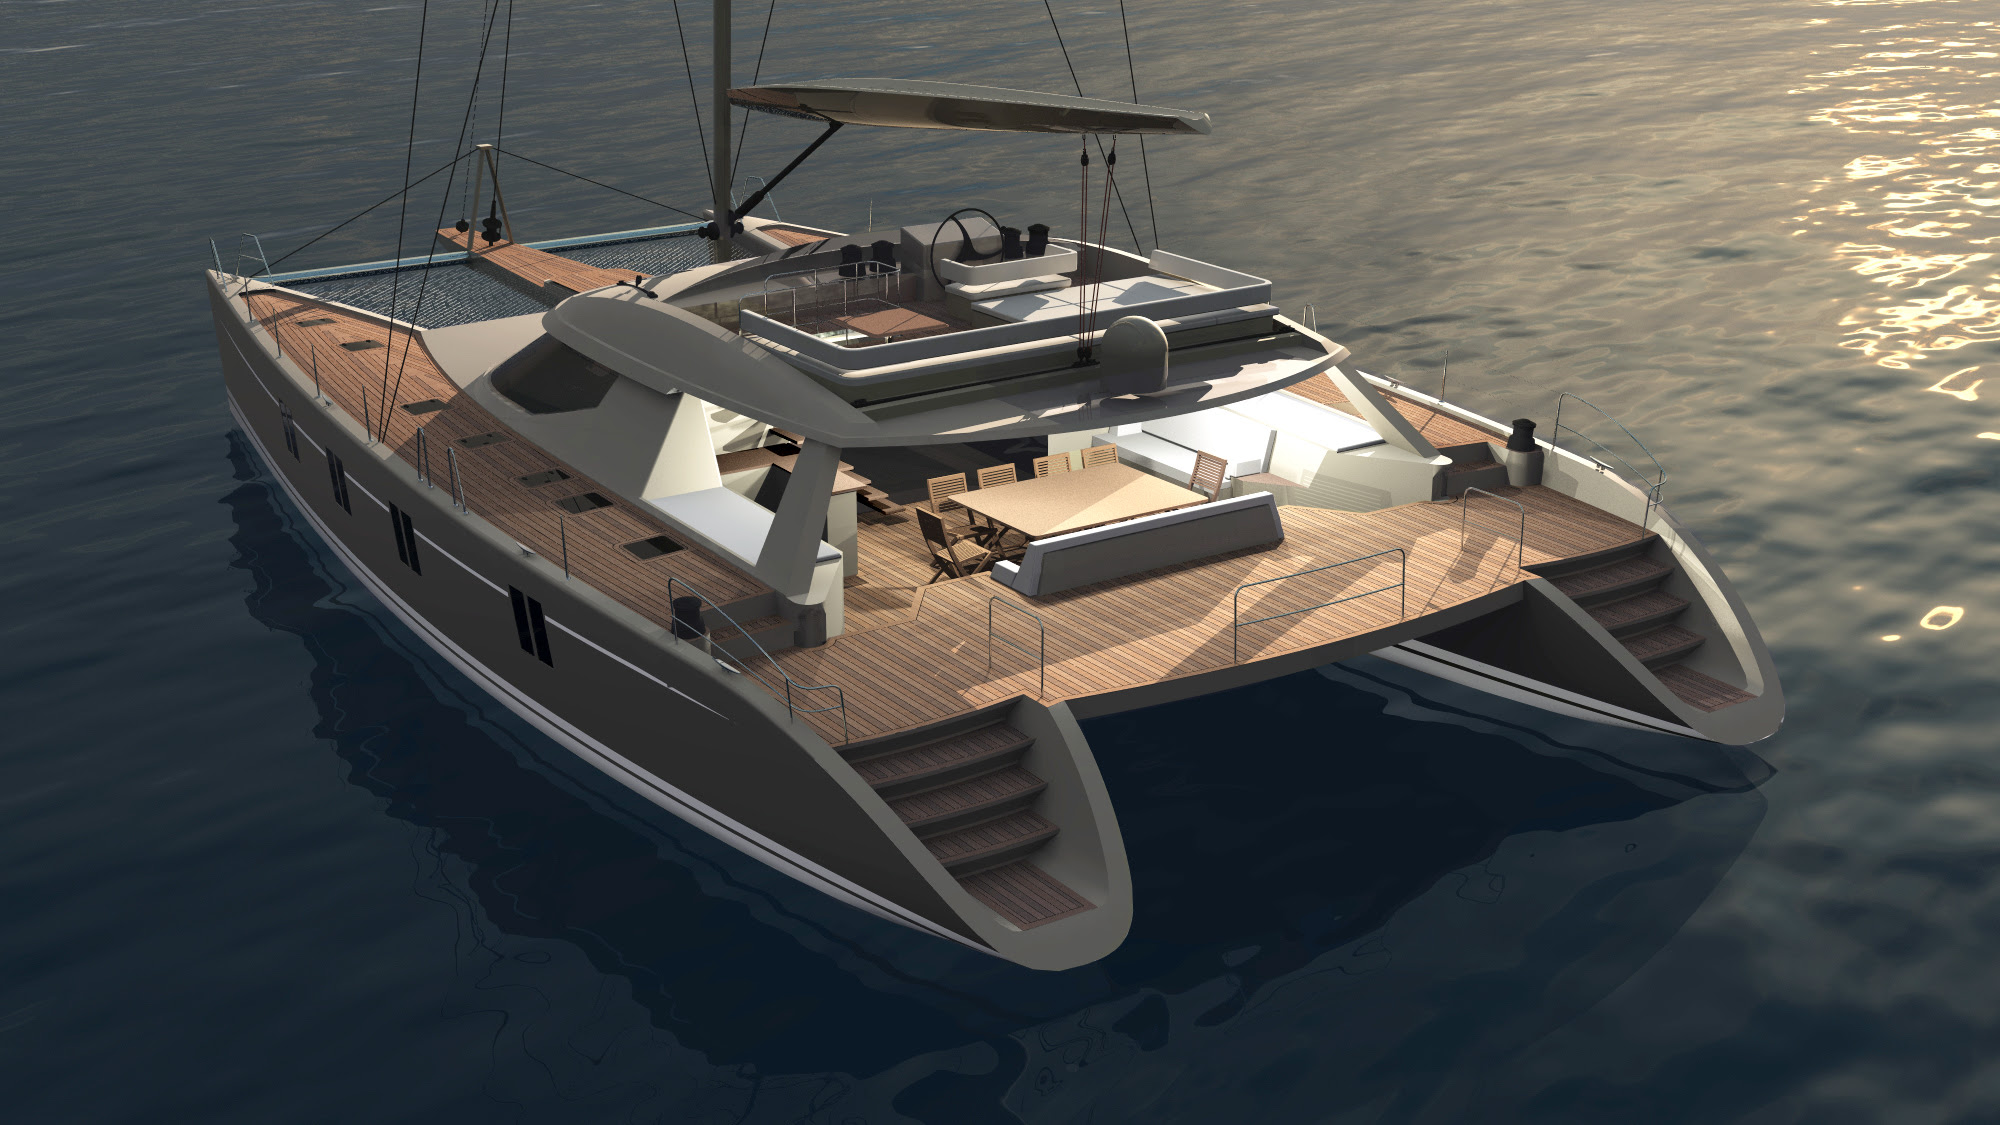 Outboard catamaran plans | Plan make easy to build boat